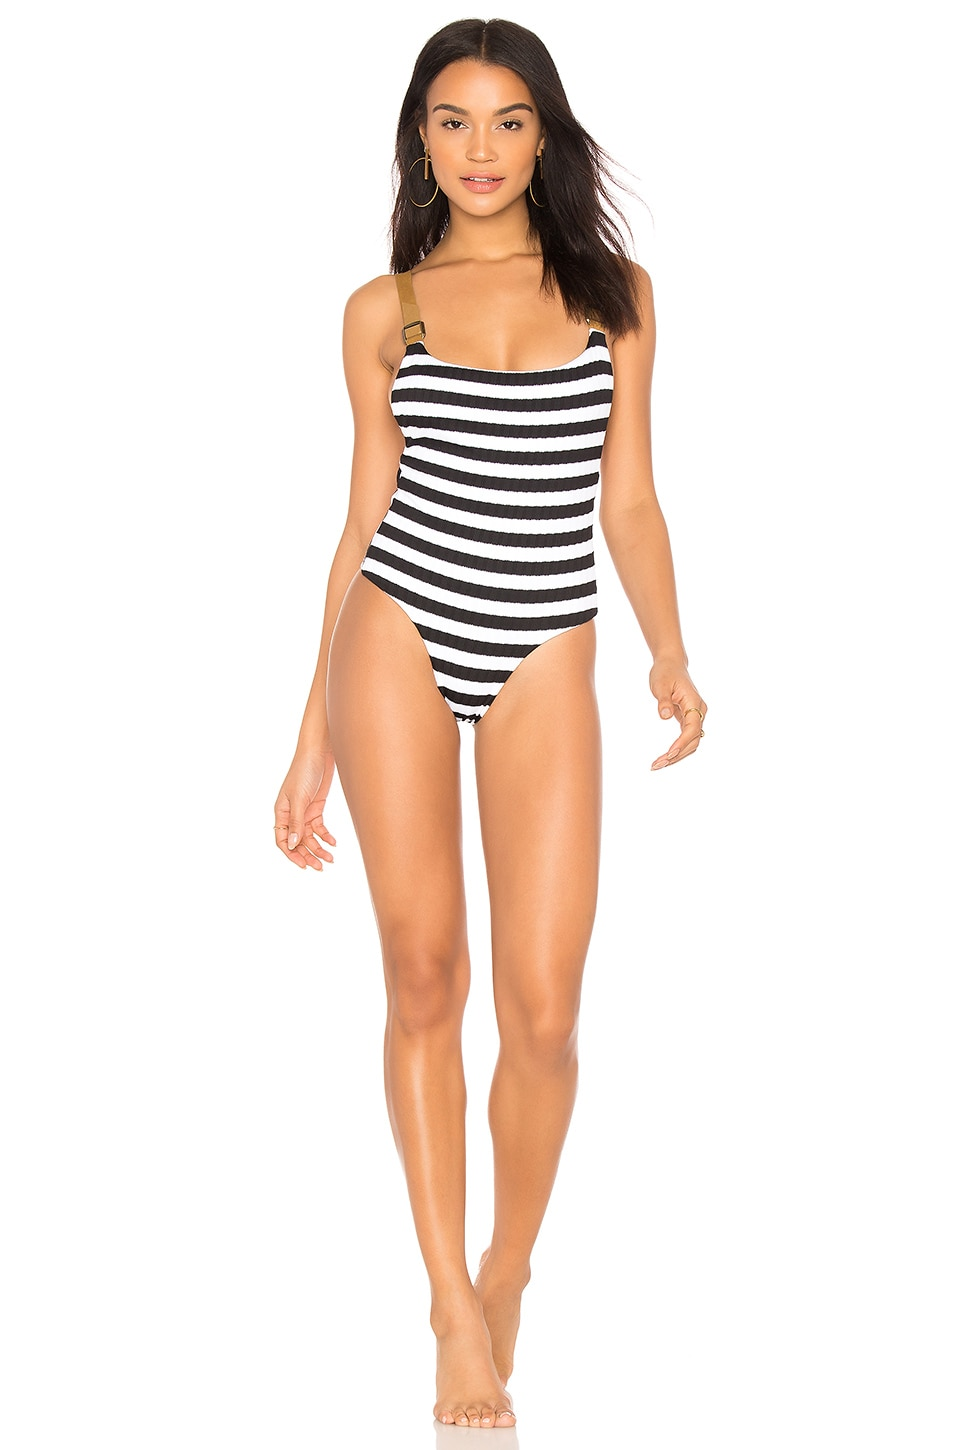 Buckled Overall One Piece by Blue Life Swimwear